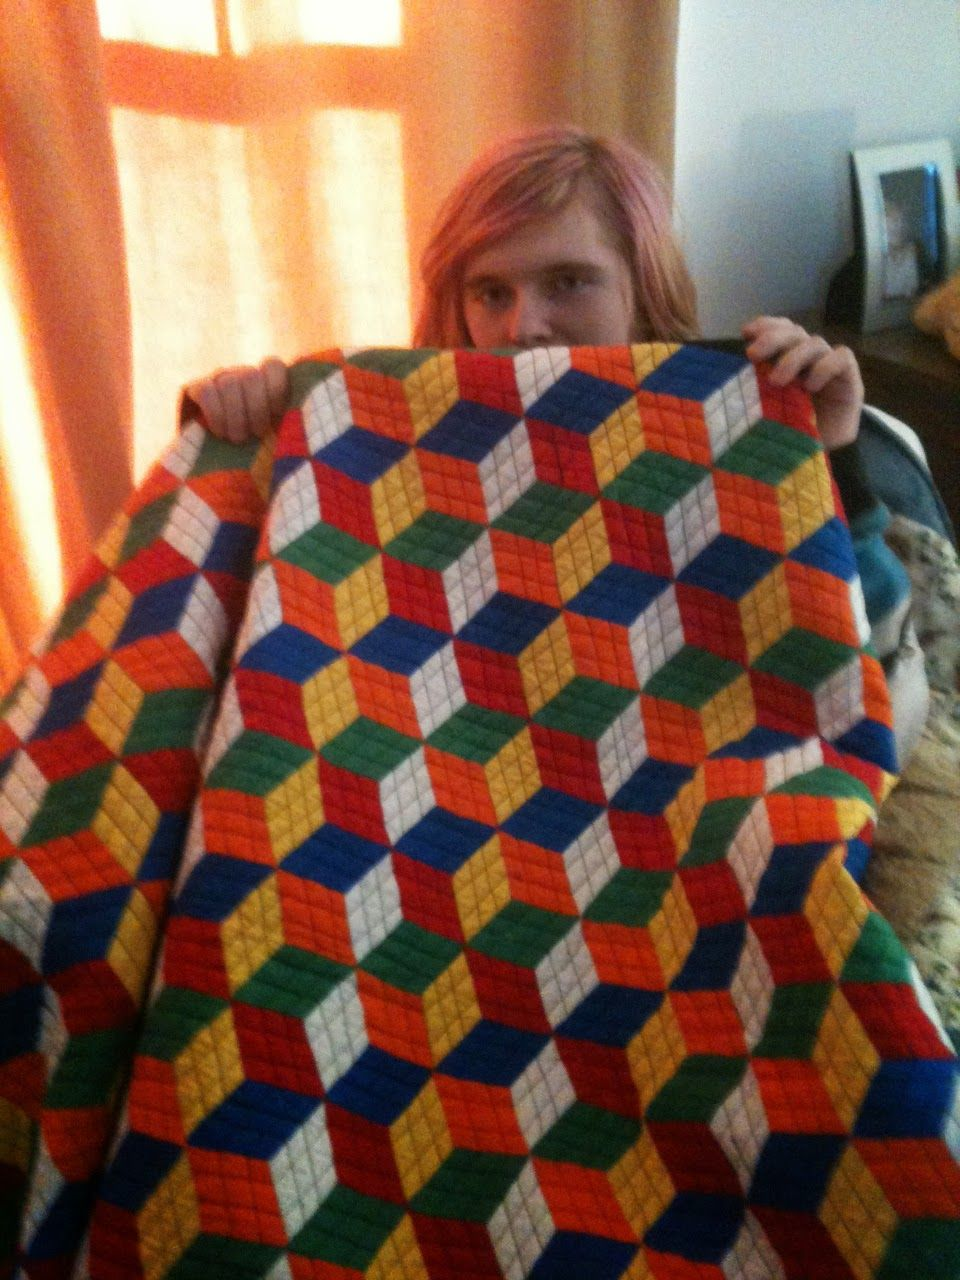 Rubik's Cube Quilt made with Quiltsmart Tumbling Blocks Pattern